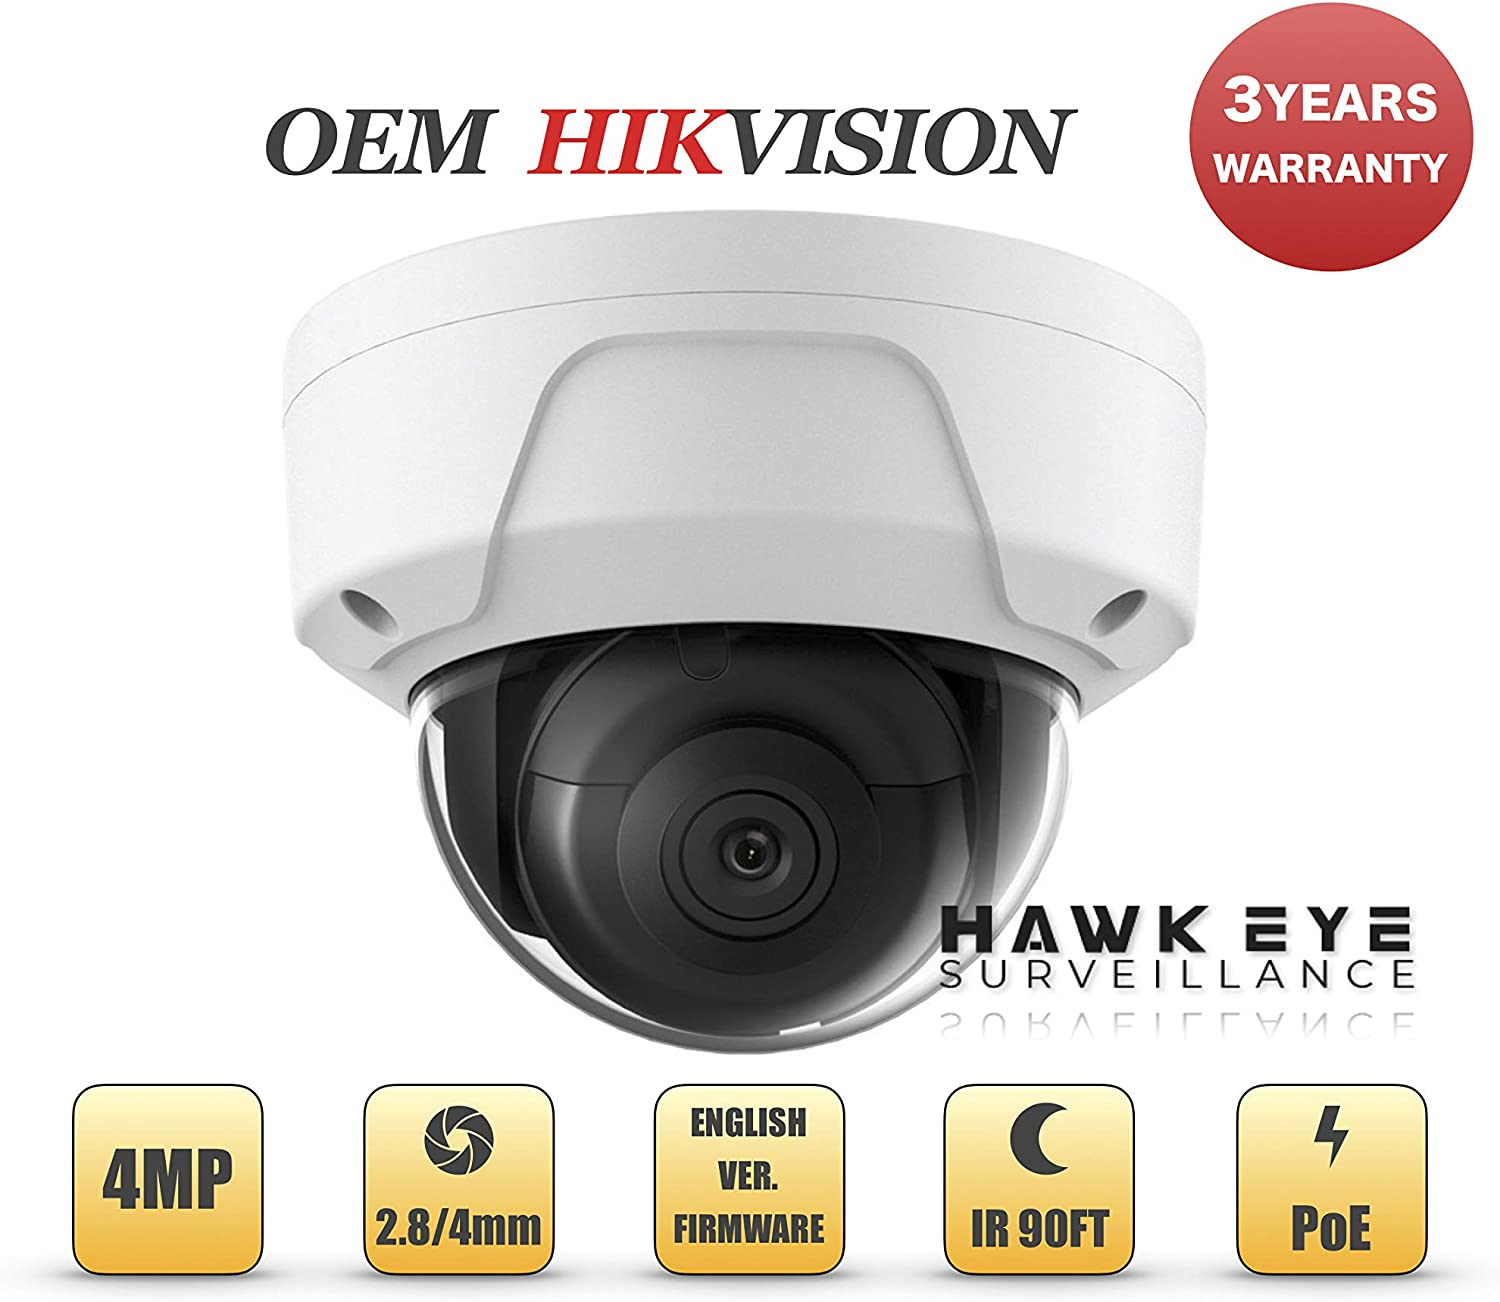 4MP PoE Security IP Camera – Compatible with Hikvision Performance Series DS-2CD2145FWD-I Mini Dome EXIR Night Vision 2.8mm Fixed Lens H.265 3 Year Warranty